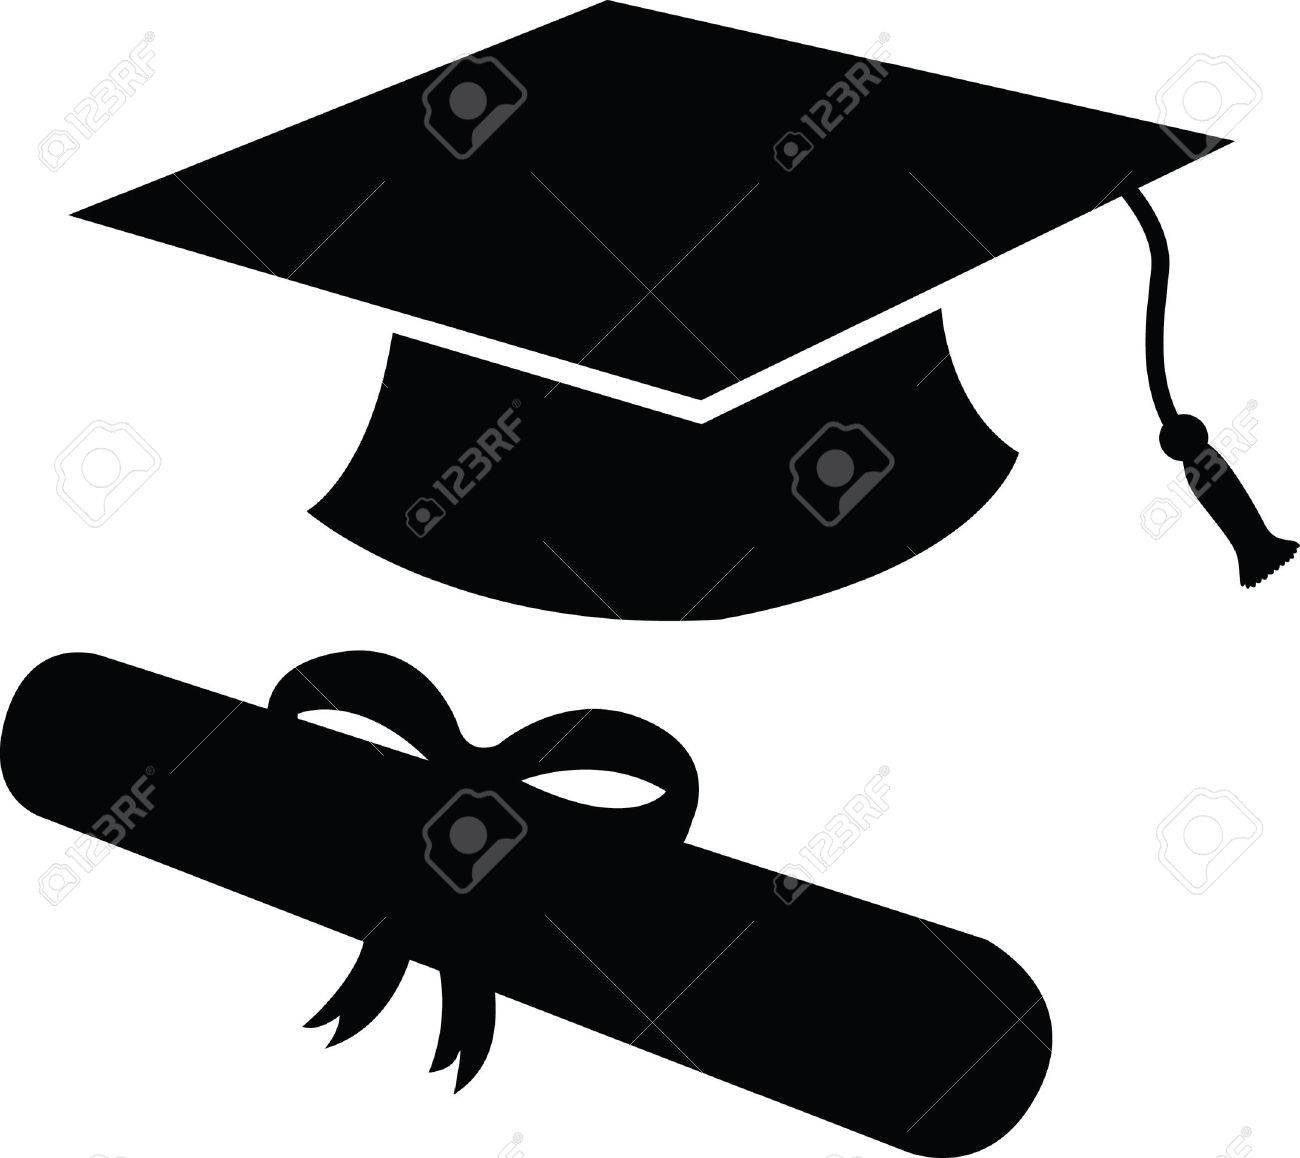 graduation cap and diploma in black silhouette icon or symbol rh 123rf com graduation cap vector silhouette graduation cap vector silhouette